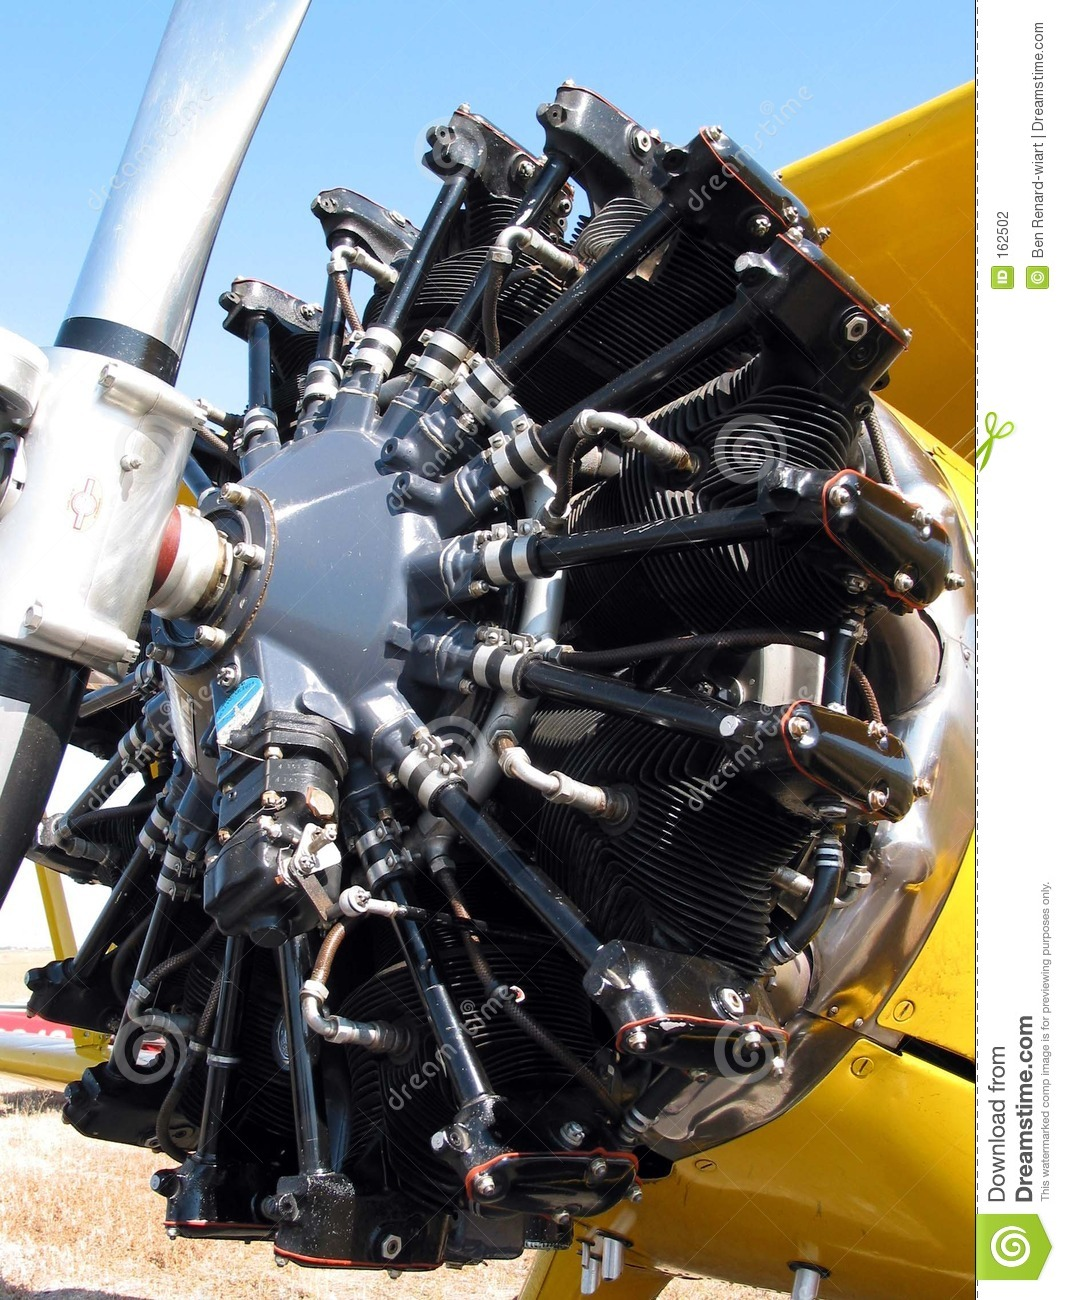 Old Plane Engine Close-up. Stock Photography - Image: 162502